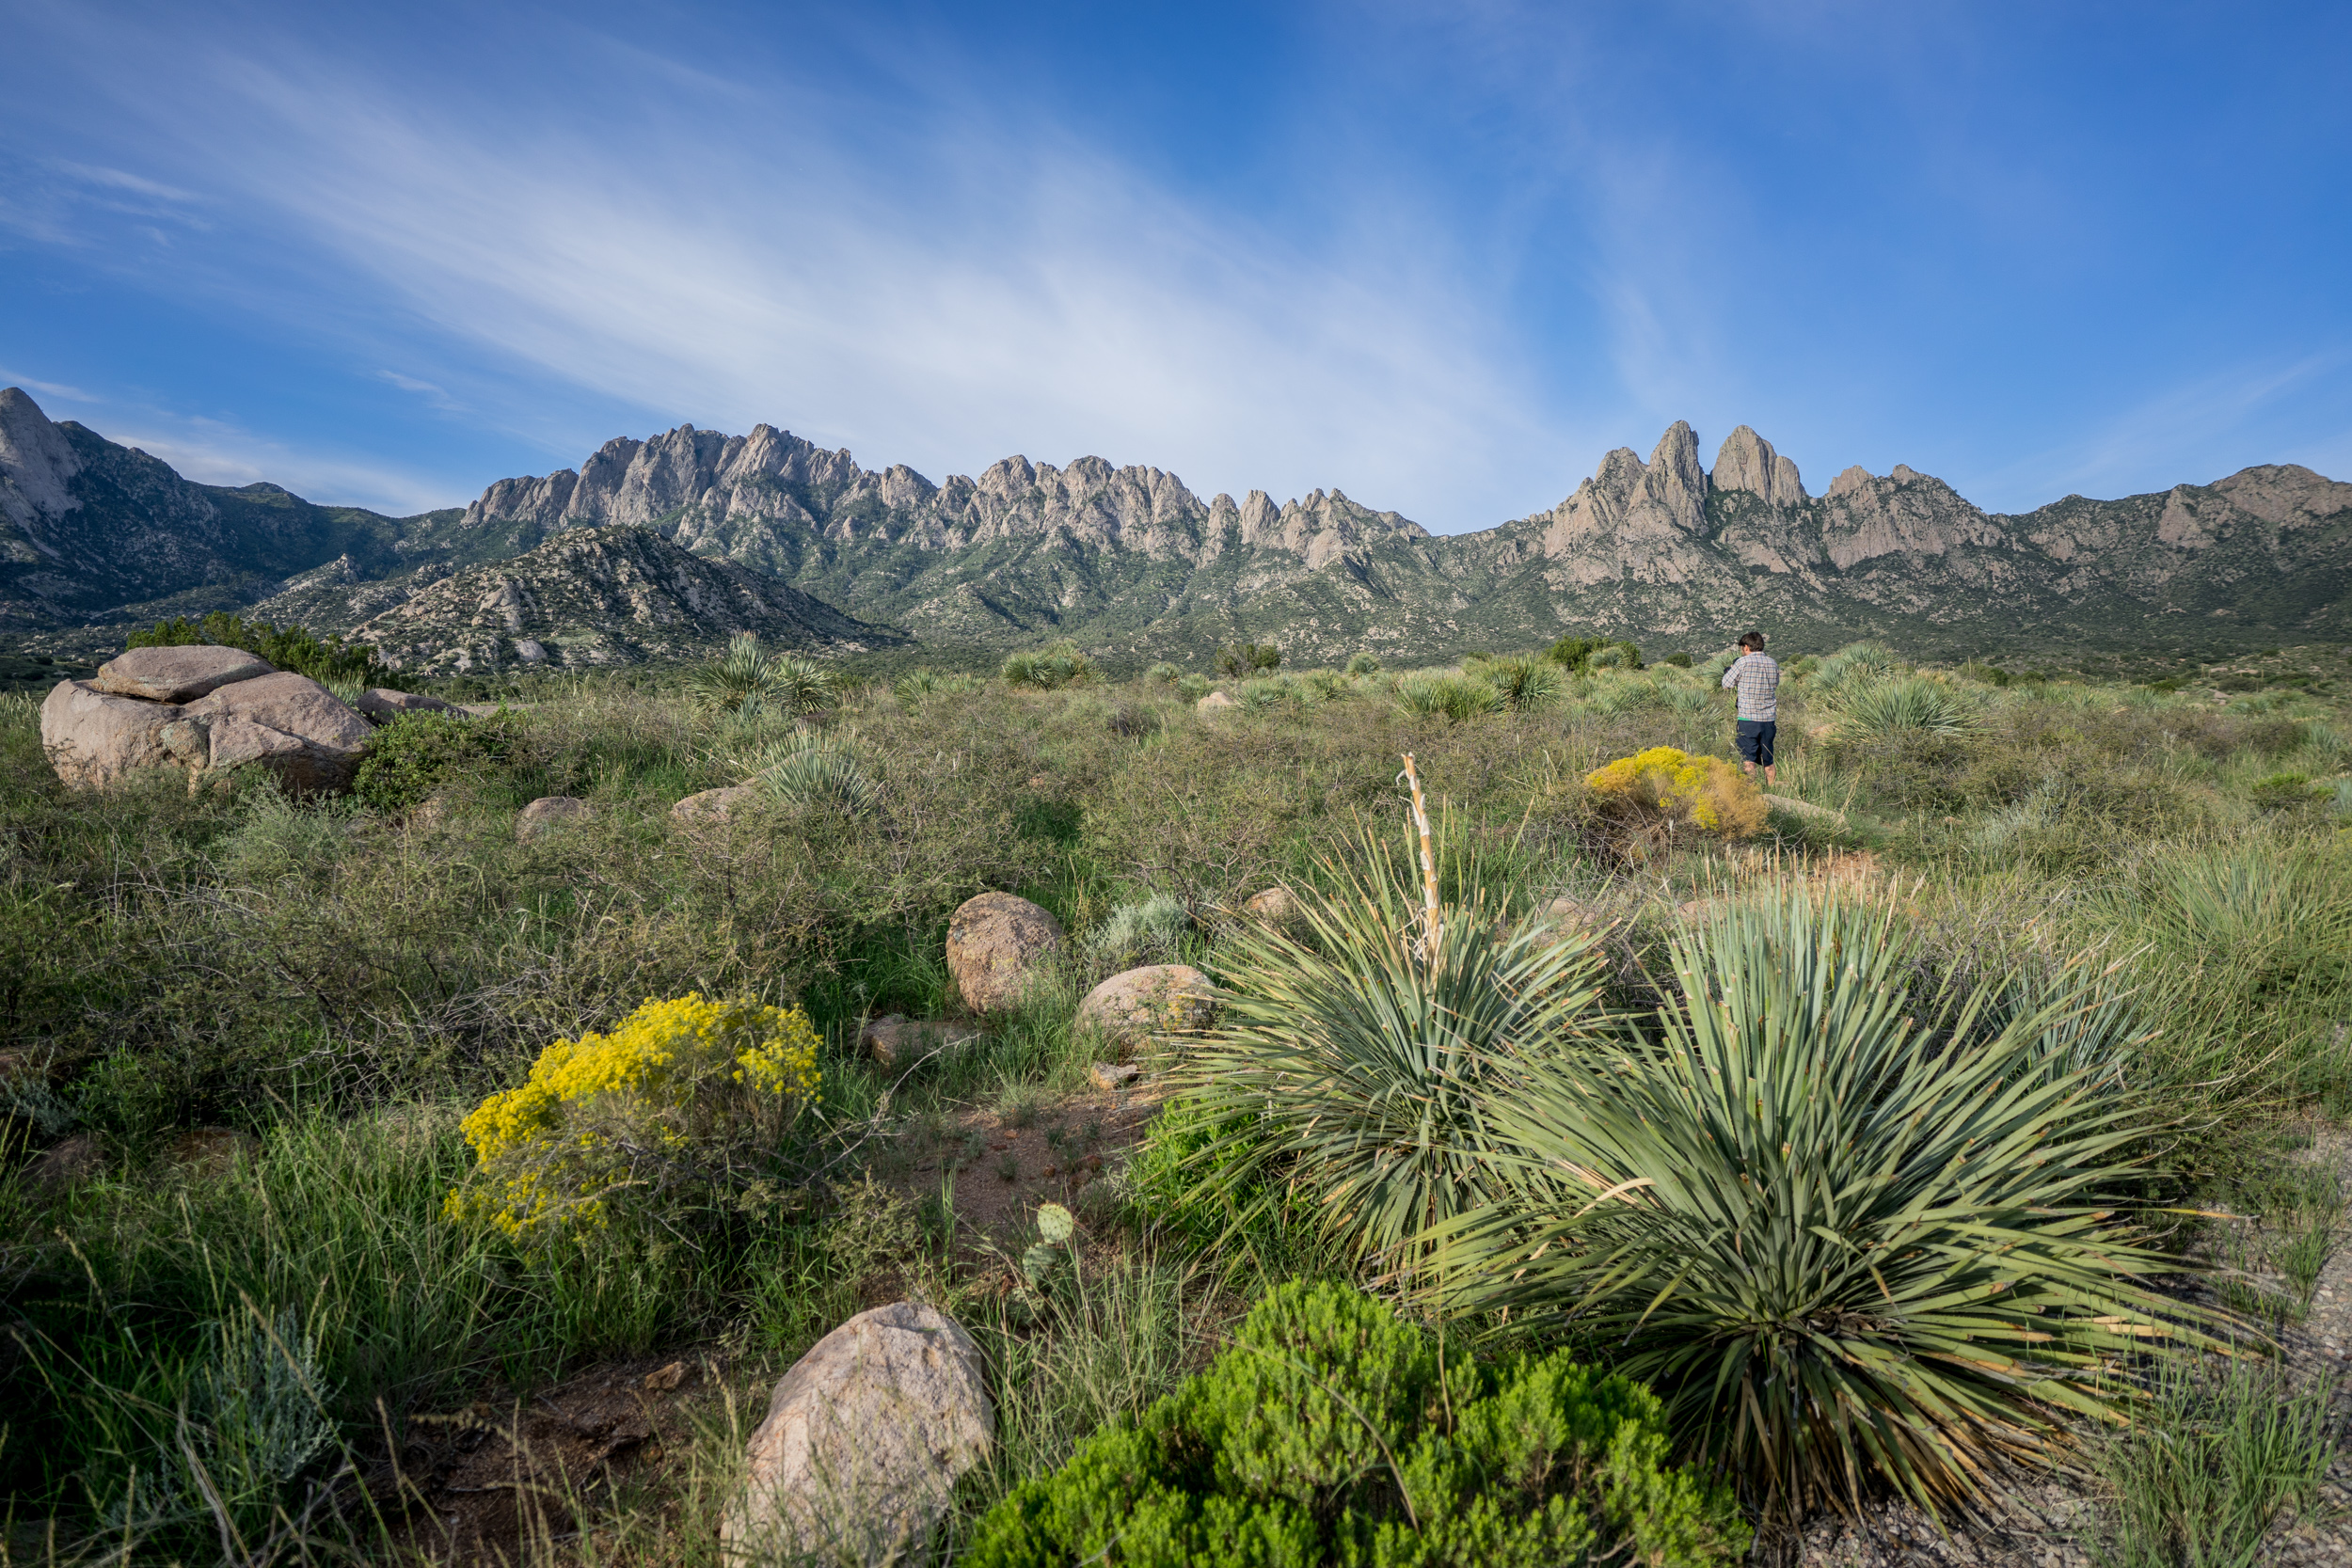 - The impressive Organ Mountains seen on our way to the Dripping Springs campground within the monument